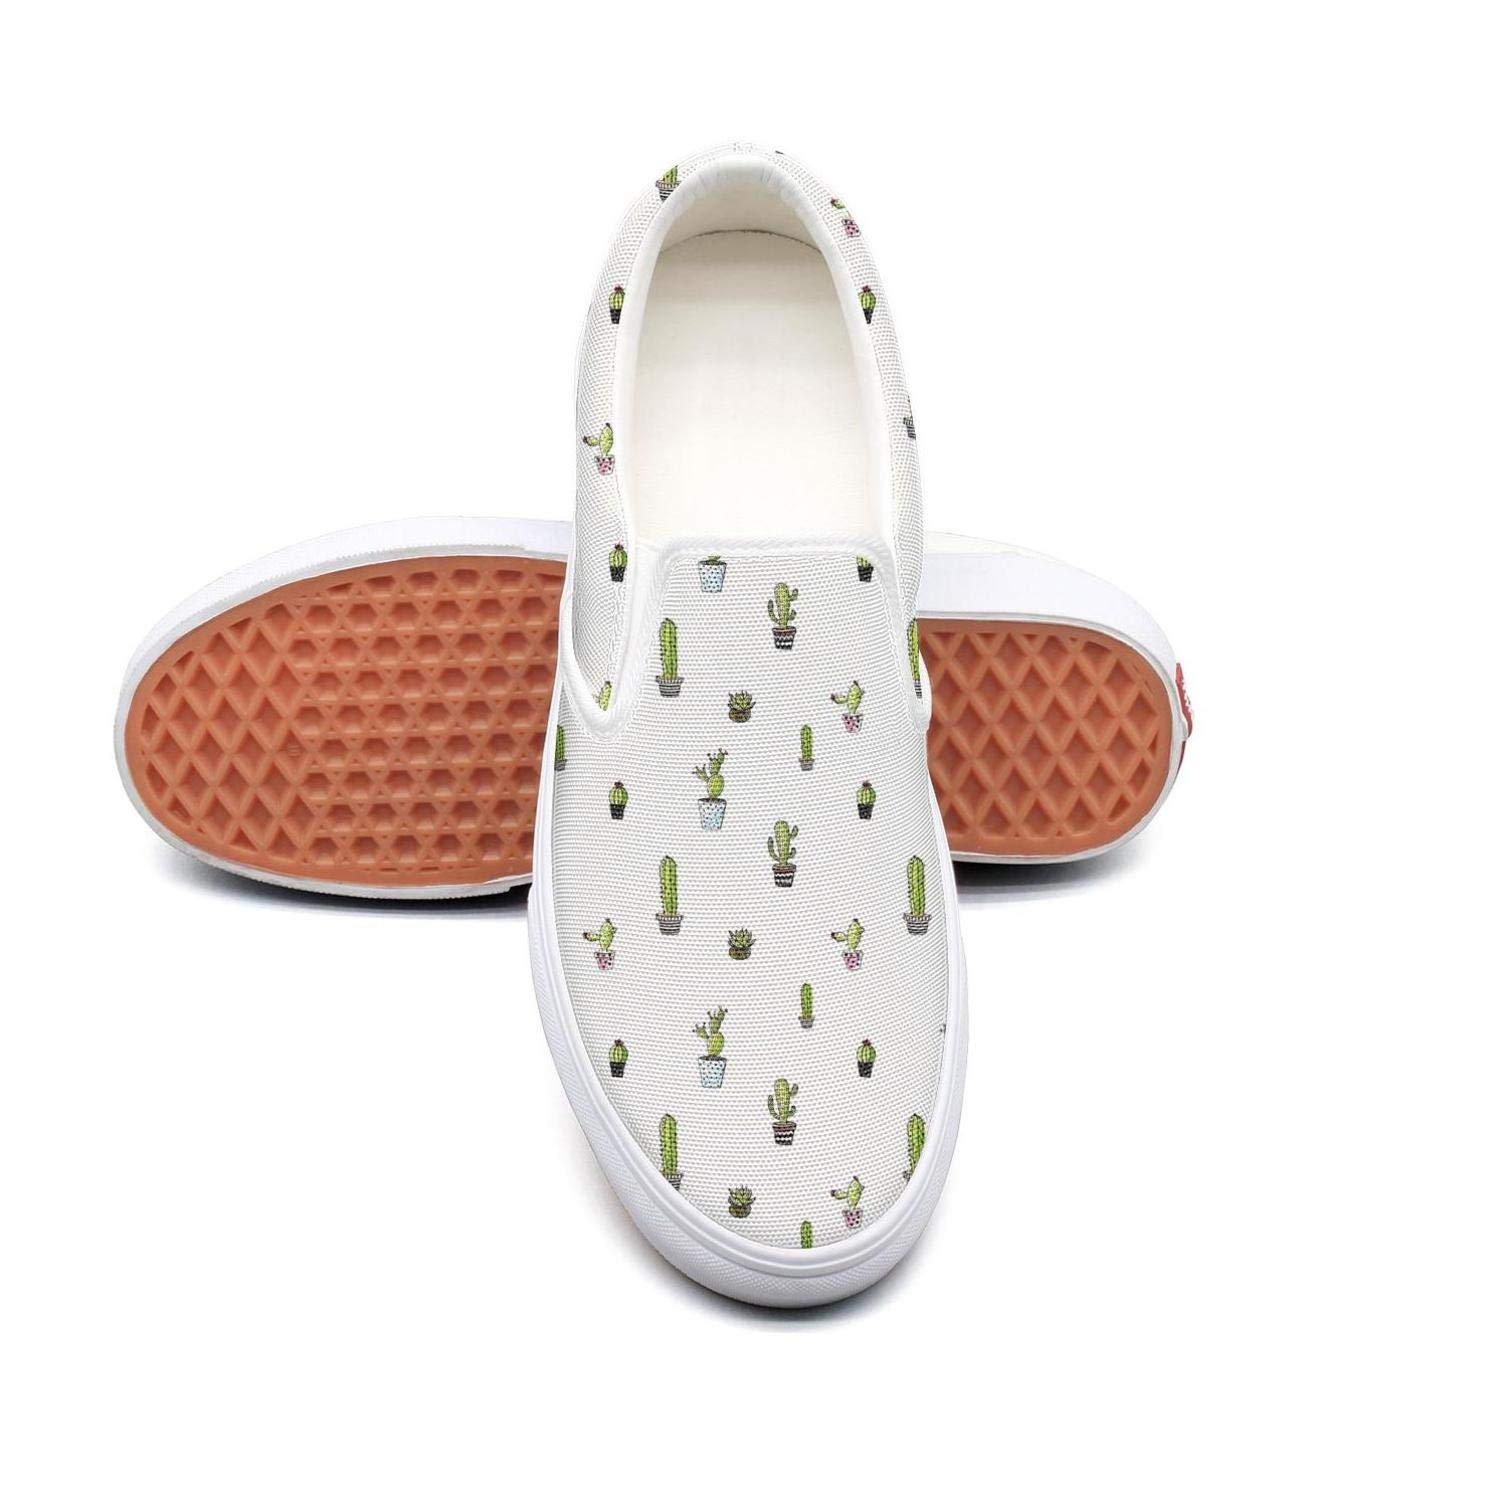 Mincactus Travel Blossom Slip On Rubber Sole Sneakers Canvas Shoes for Women Comfortable